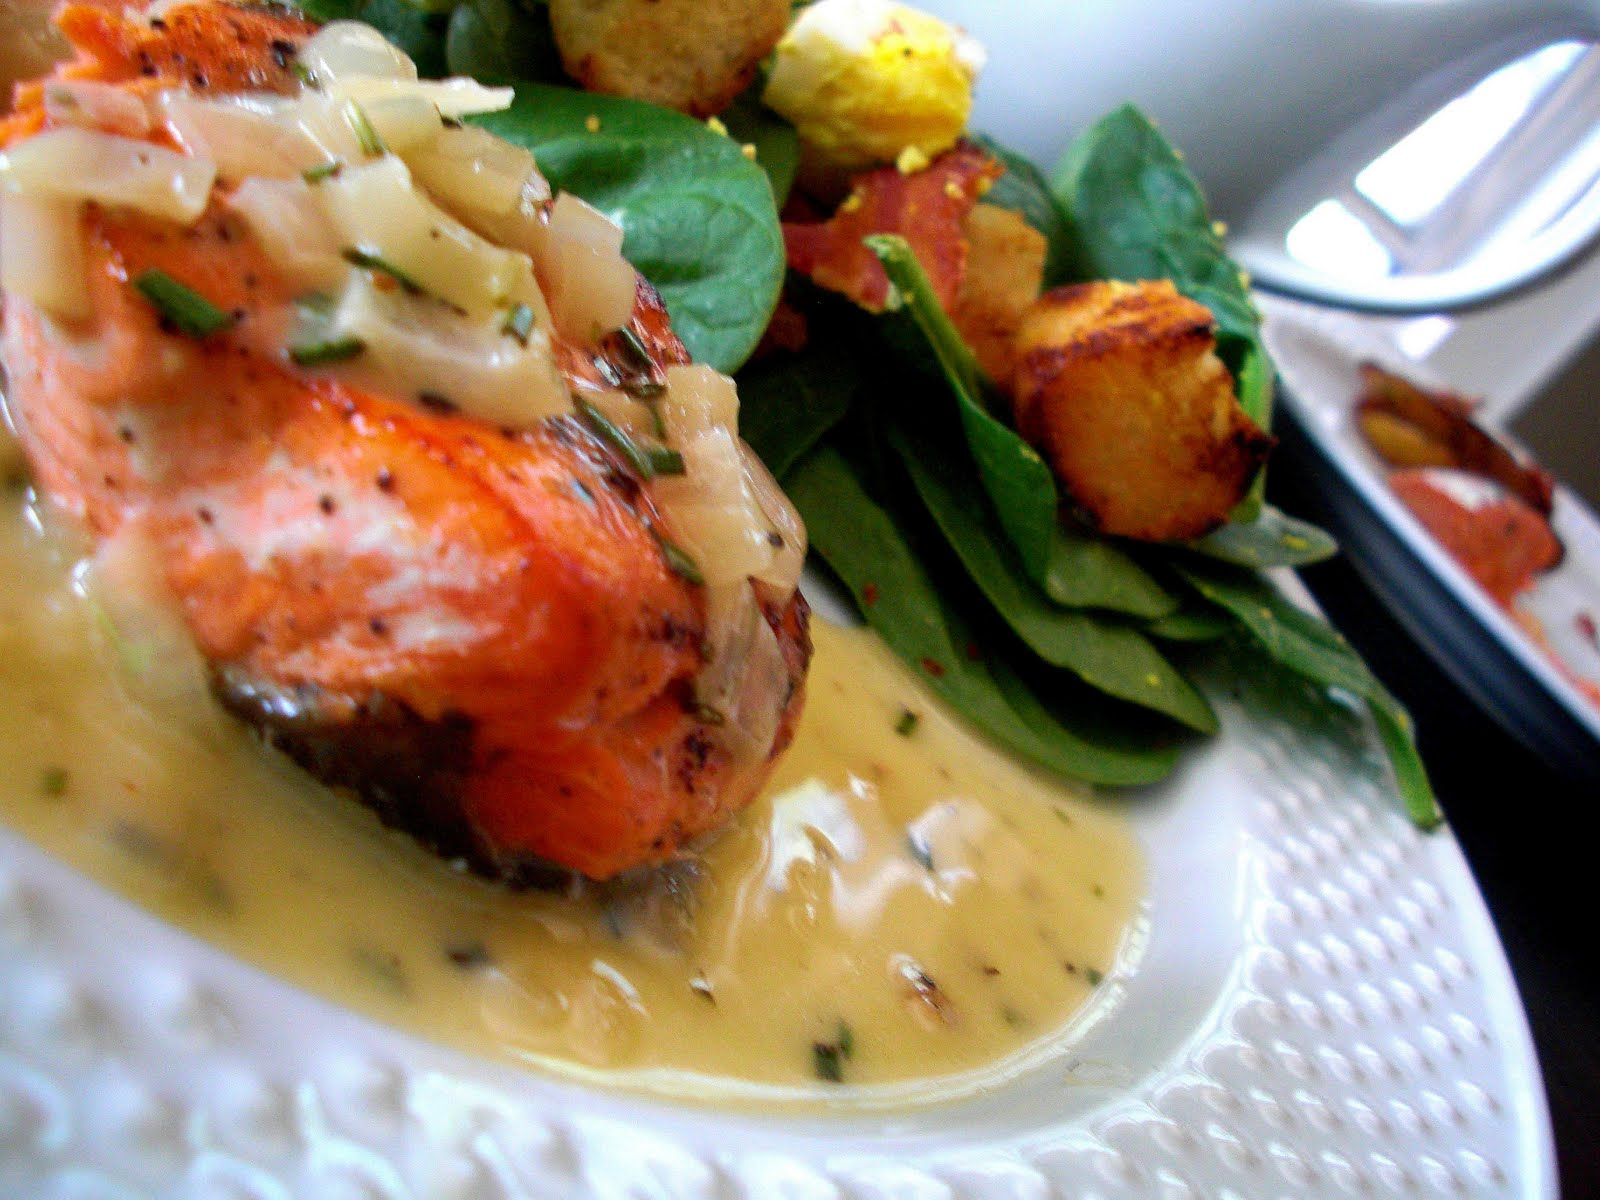 ... : Sear-Roasted Salmon Fillets with Lemon-Rosemary Butter Sauce